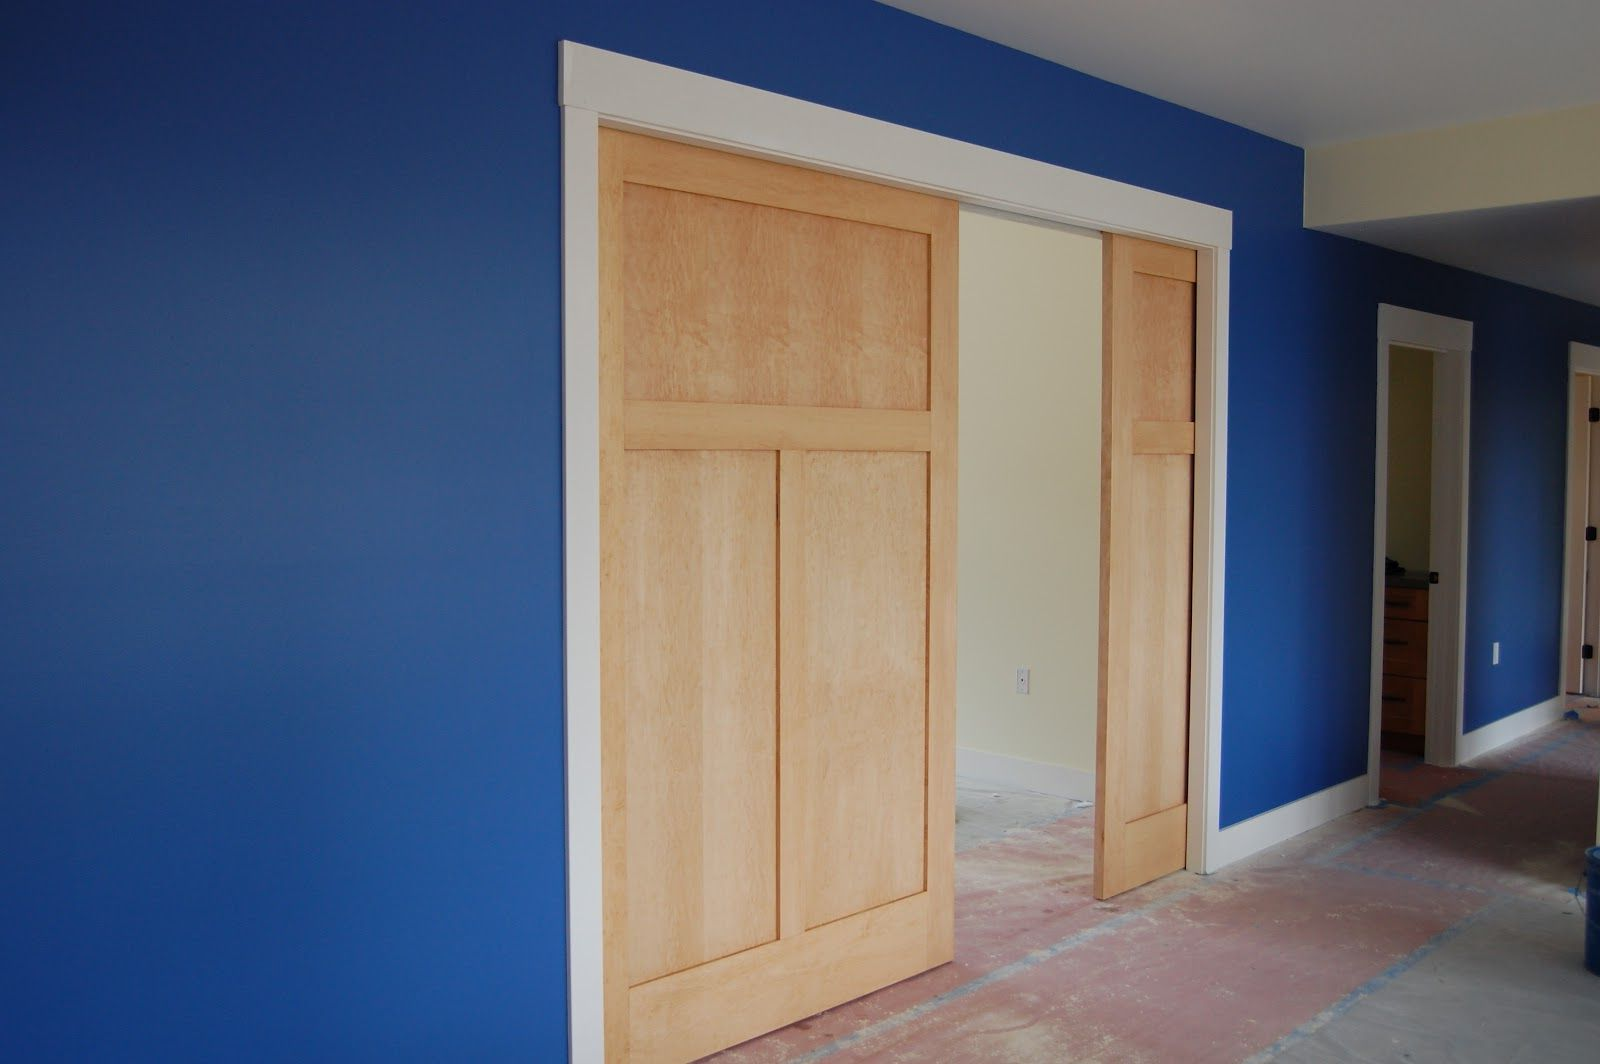 wooden pocket interior doors and blue walls in the room